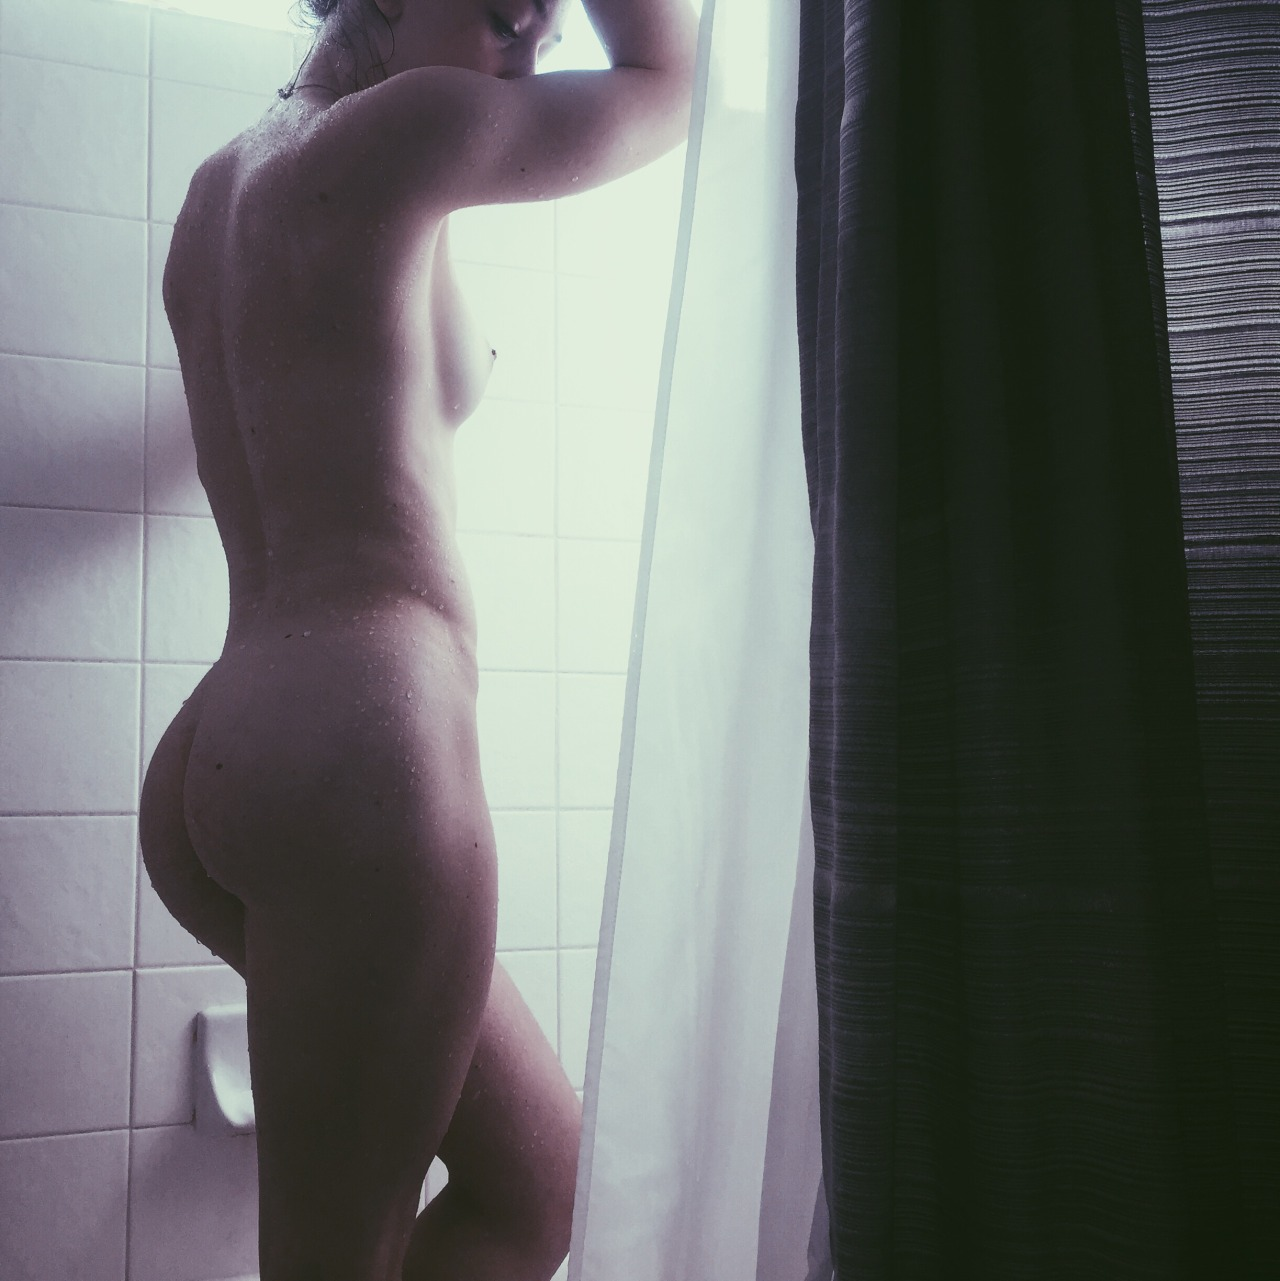 natkittenxoxo cleverly using the shower curtain to diffuse the light